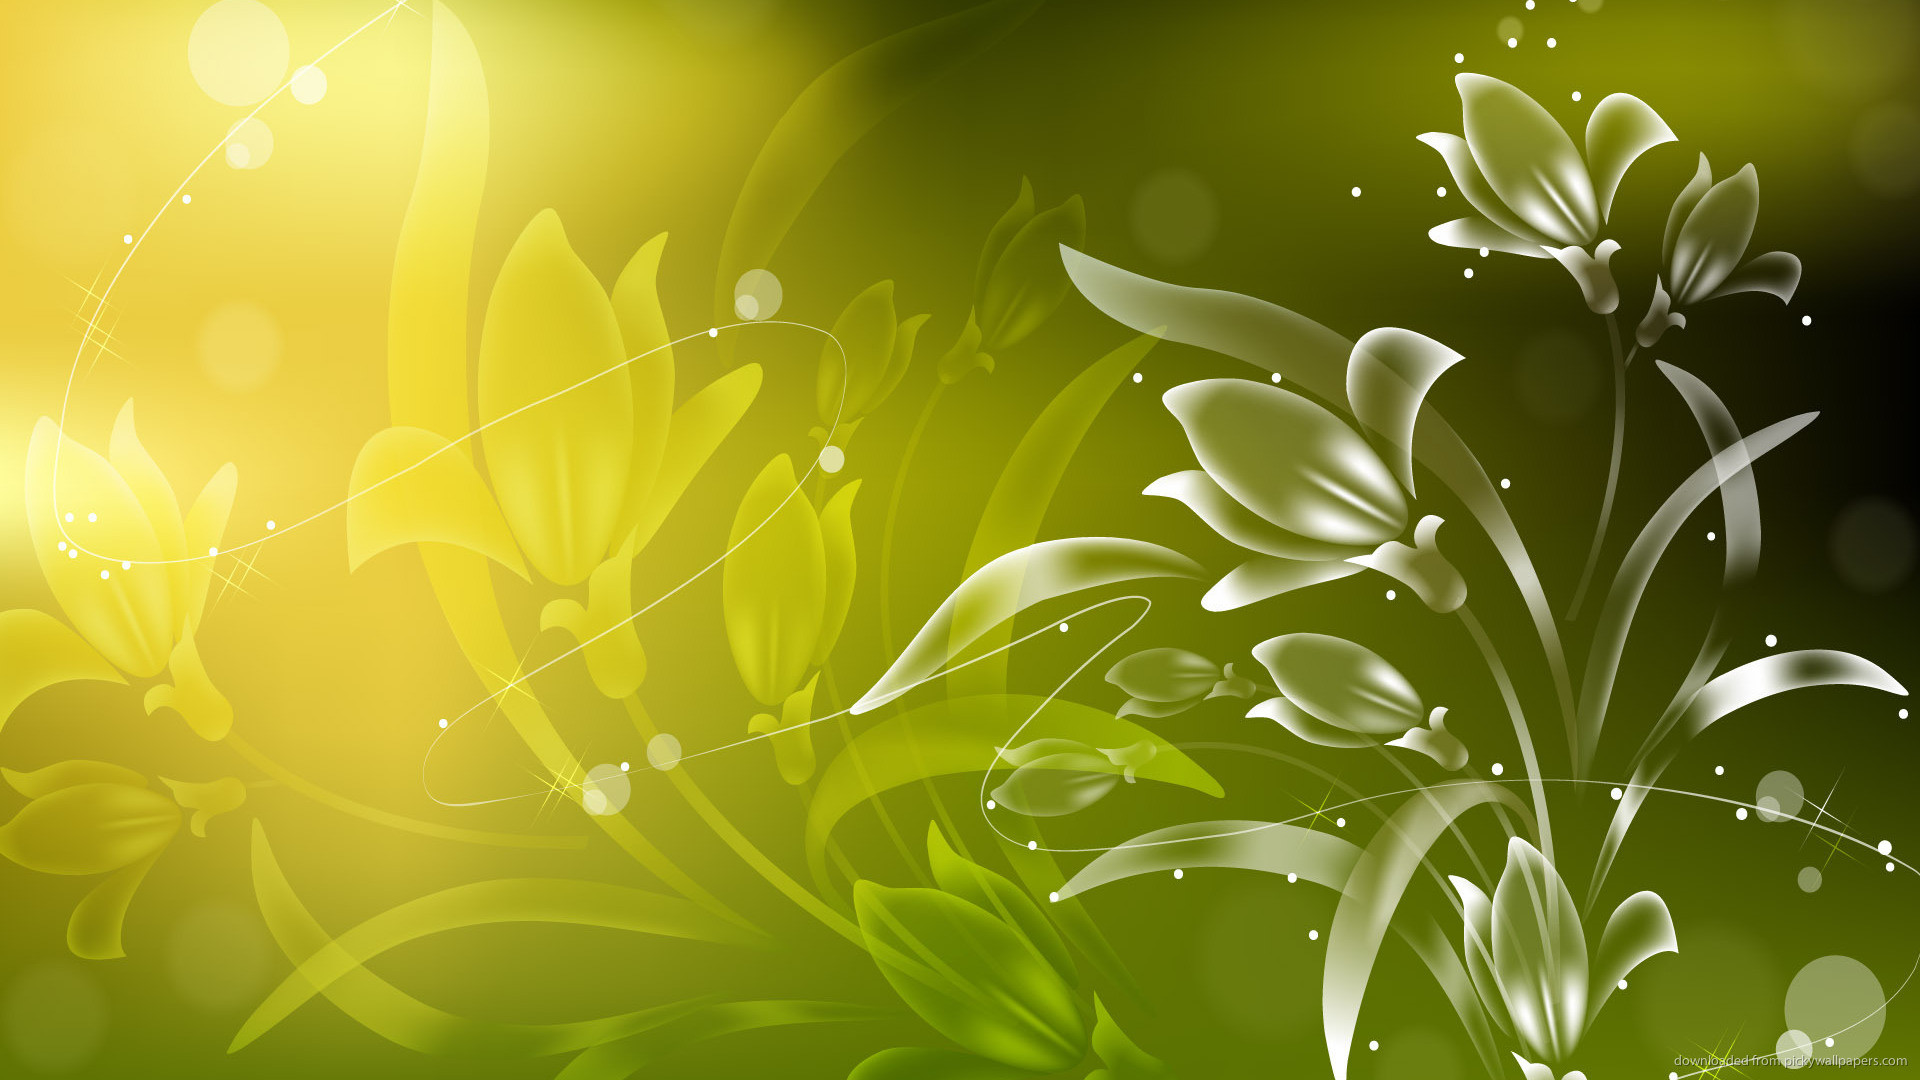 Res: 1920x1080, Green Flowers HD Free Wallpaper